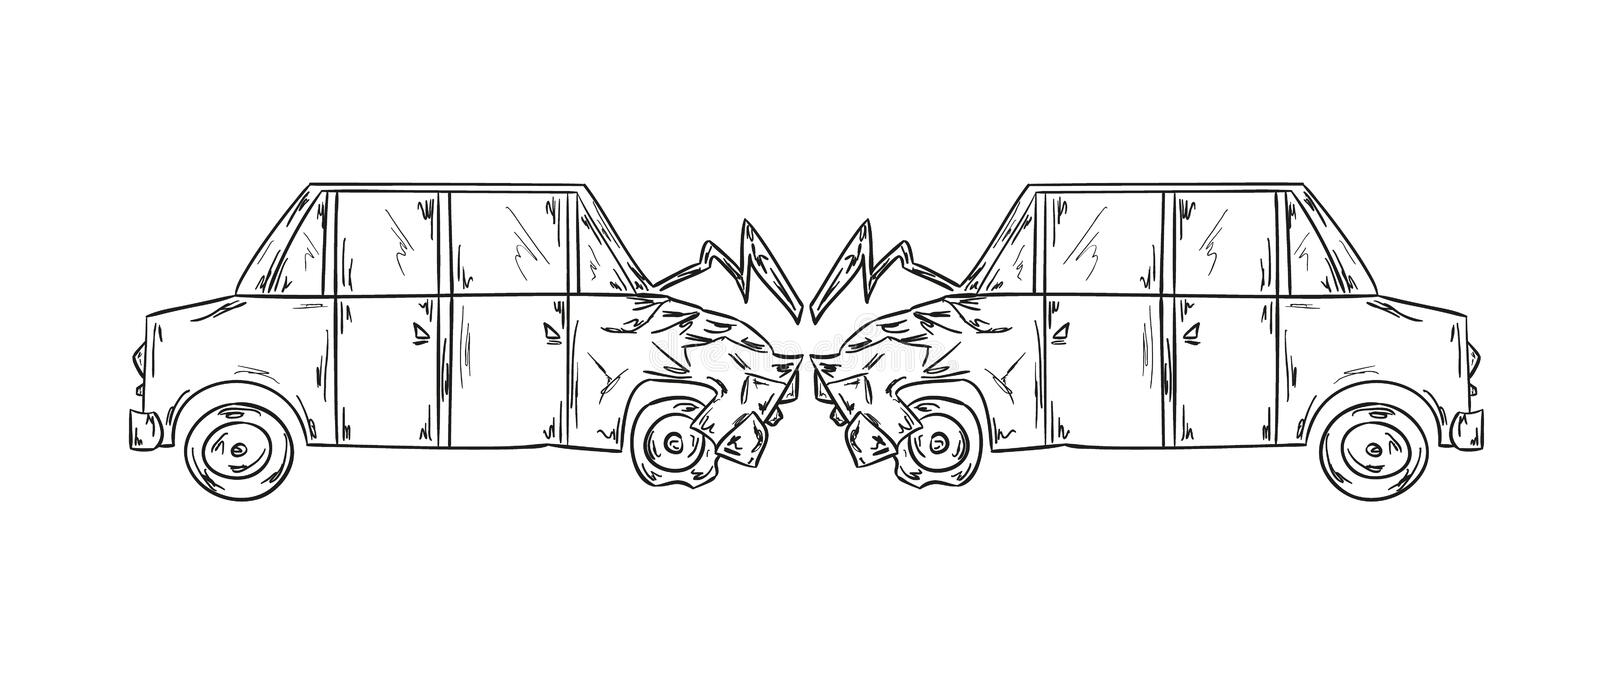 Accident Of Two Cars Sketch Stock Vector - Illustration of ...